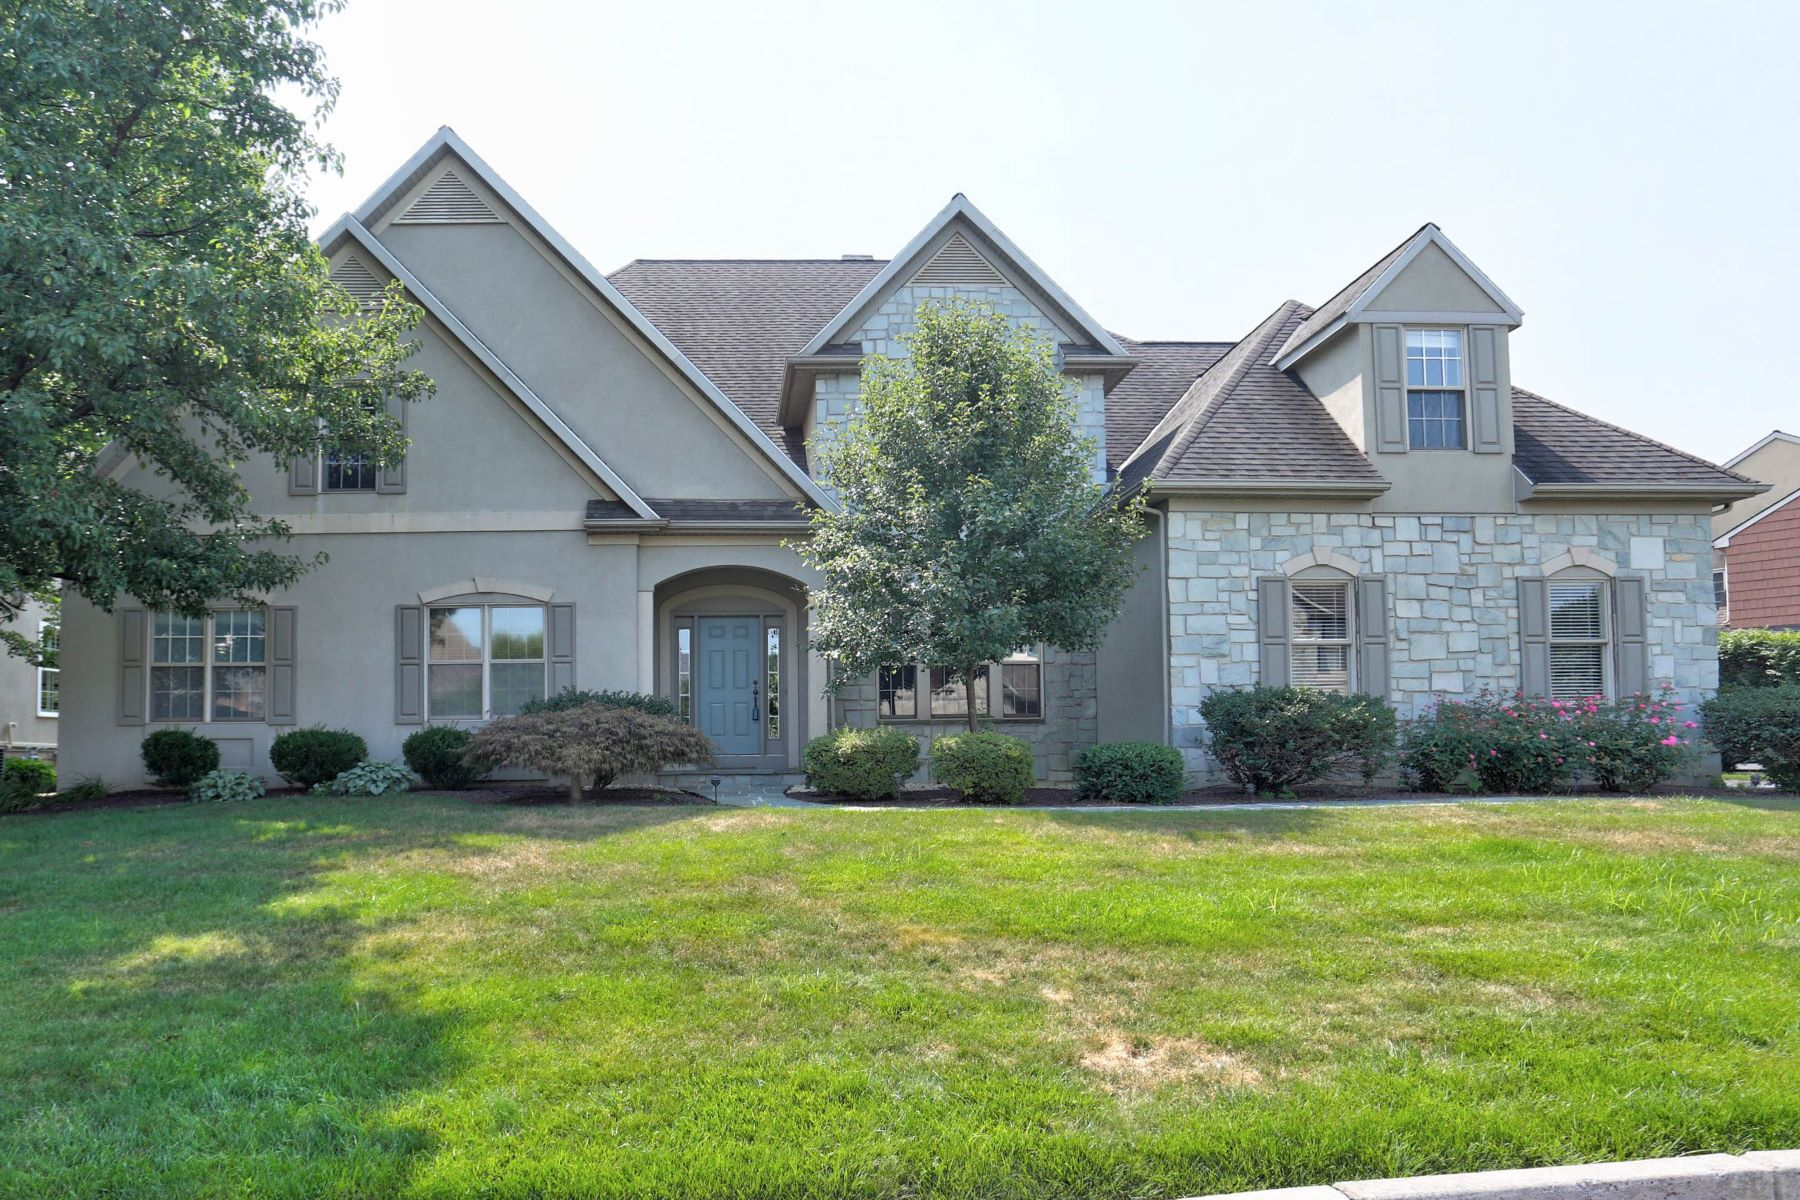 Single Family Home for Sale at 805 Woodfield Drive Lititz, Pennsylvania, 17543 United States